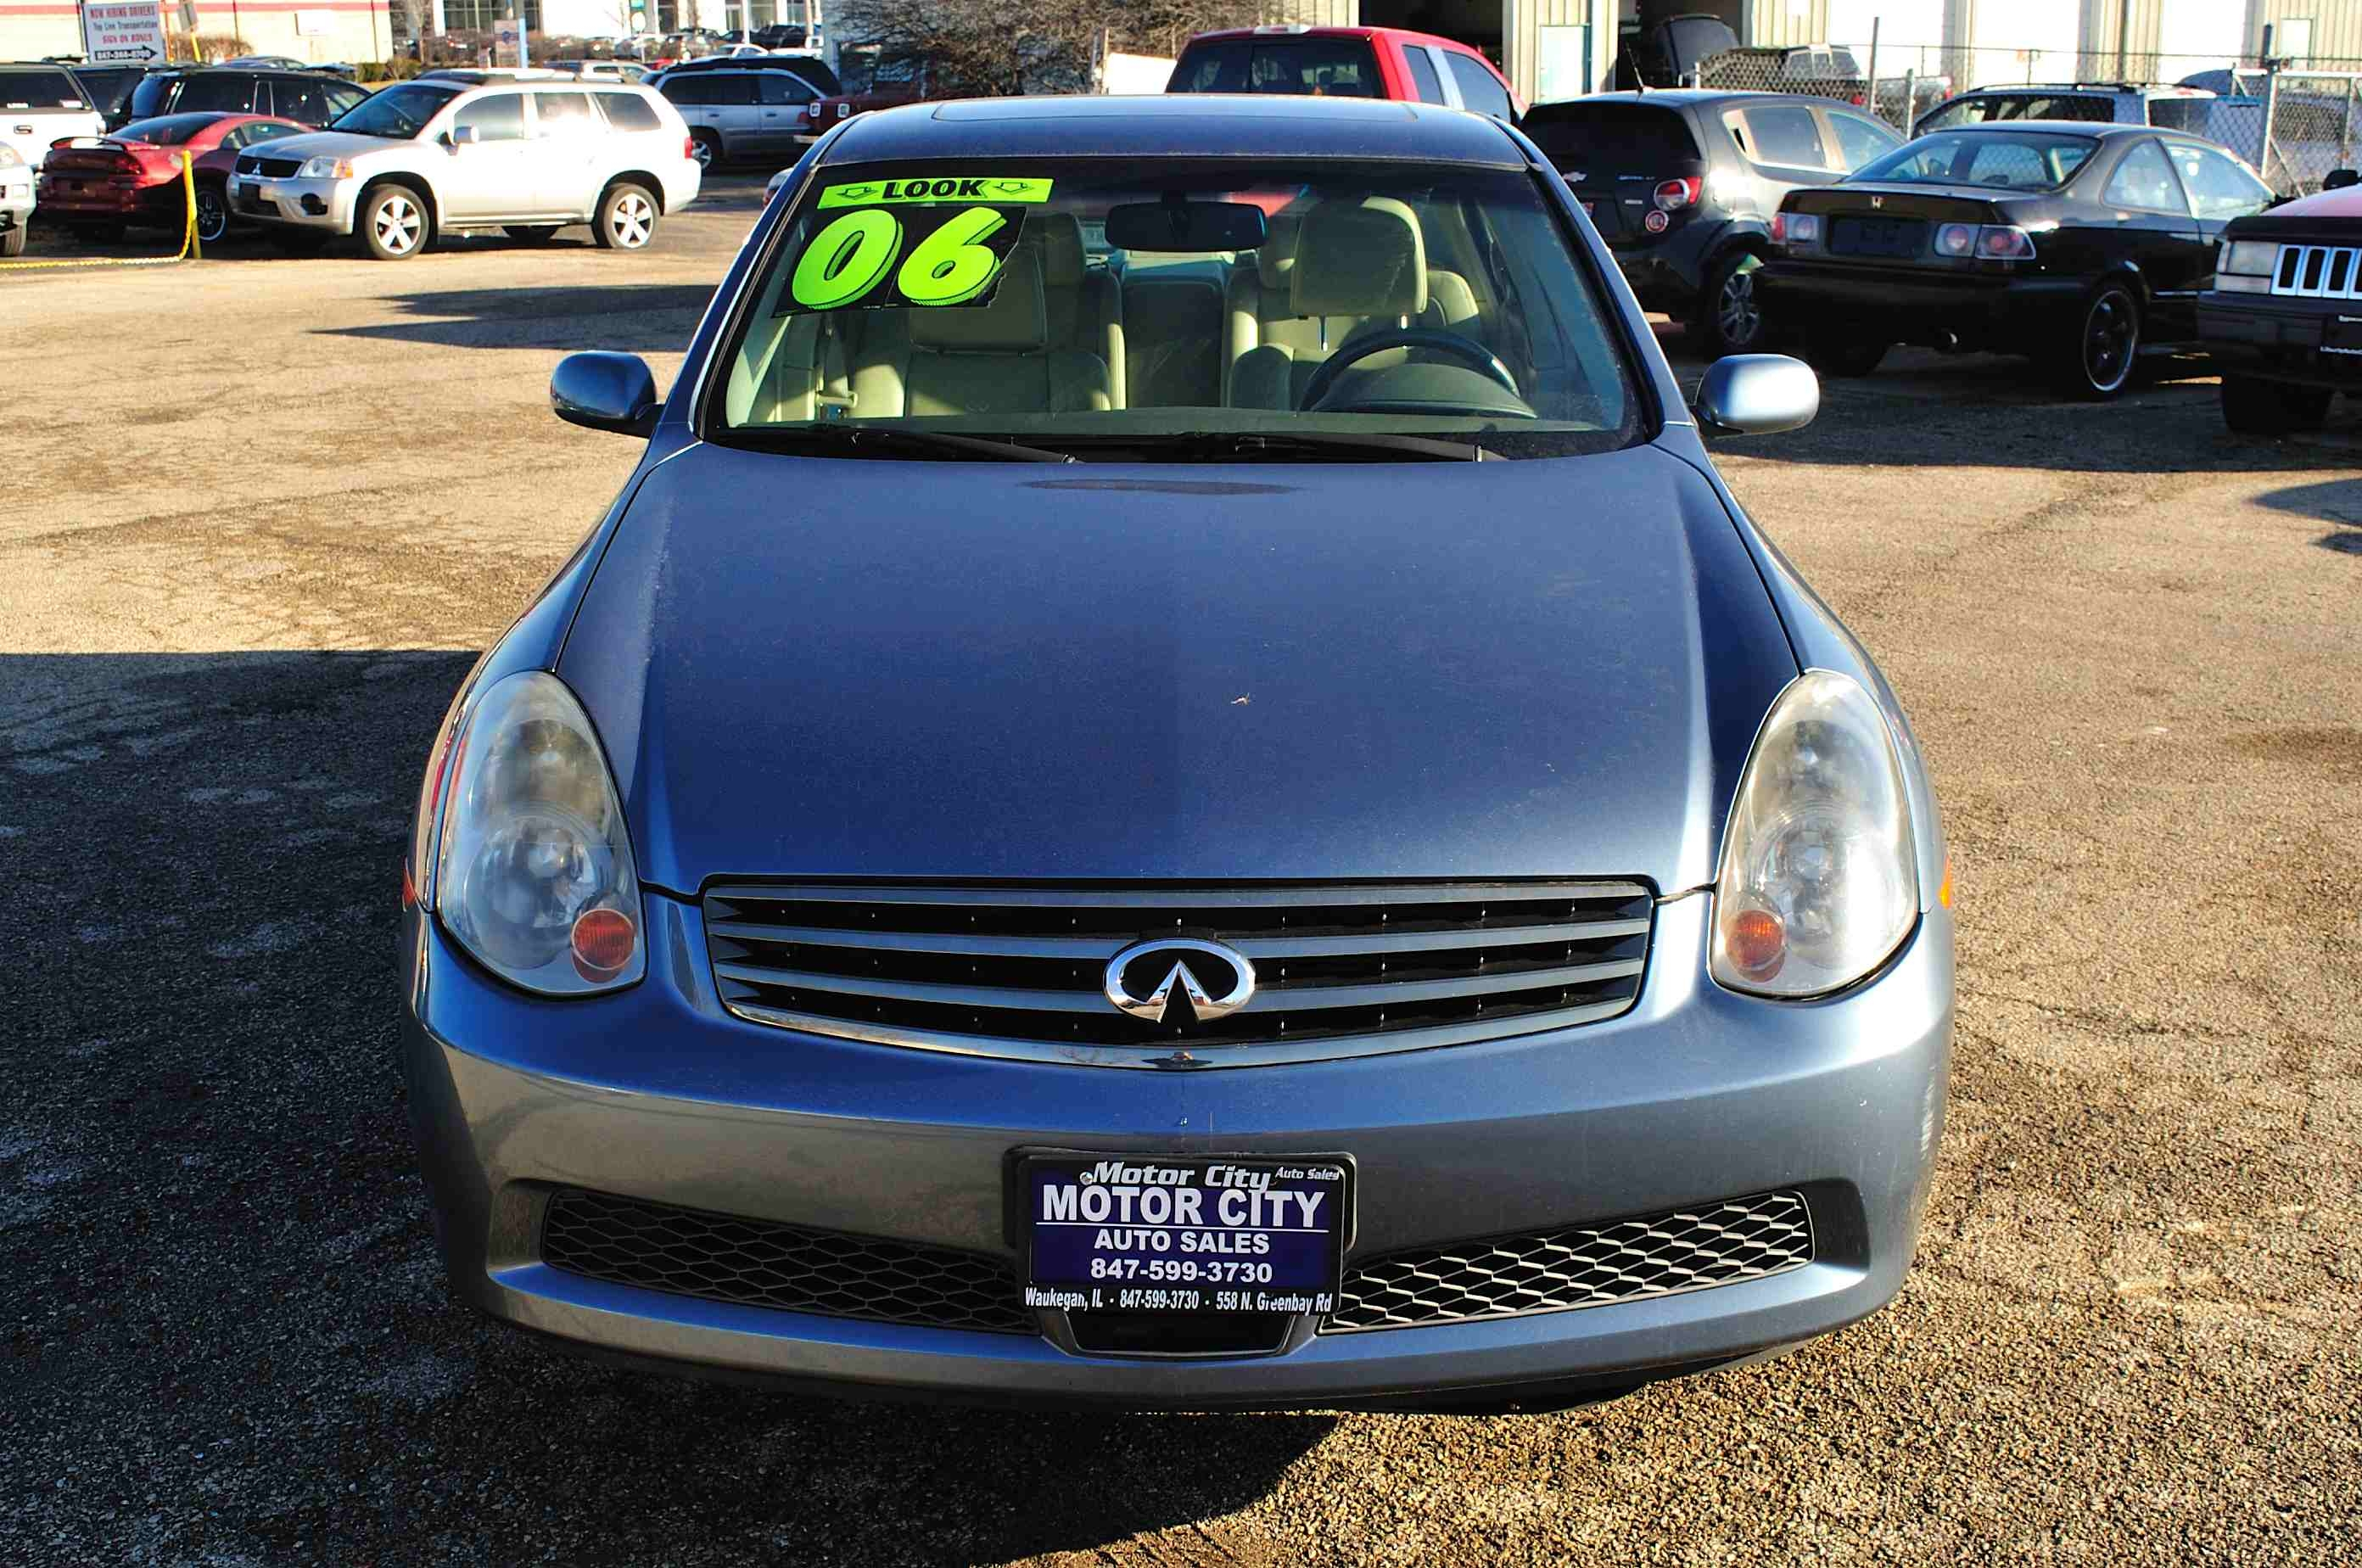 2006 Infiniti G35X Blue Sedan Used Car Sale Gurnee Kenosha Mchenry Chicago Illinois